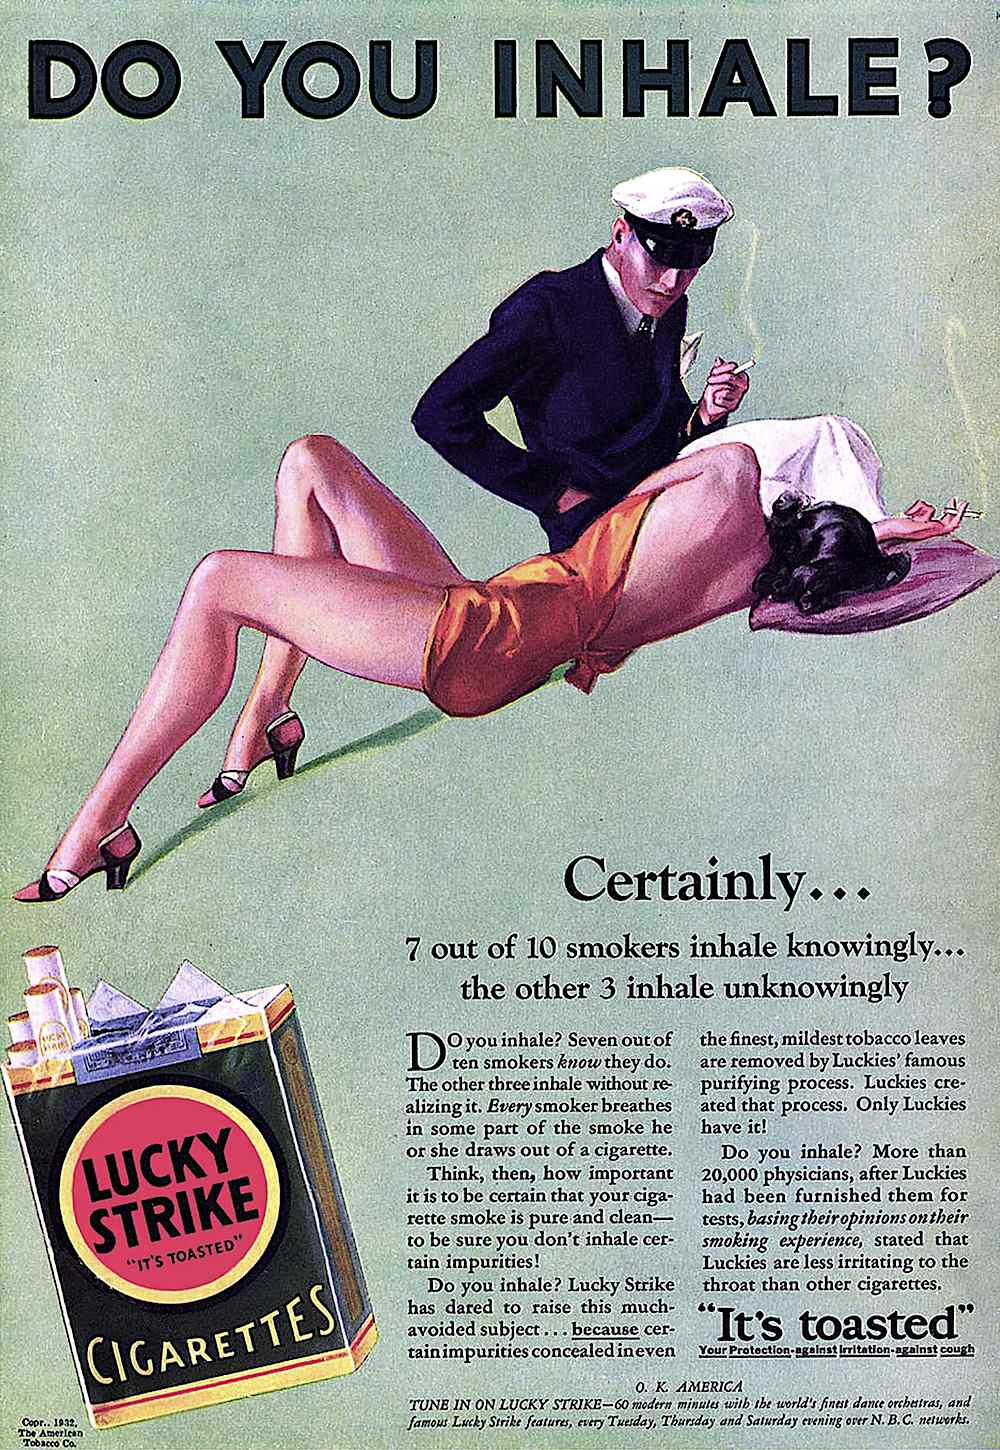 Lucky Strike cigarettes, sex in advertising, Do you inhale